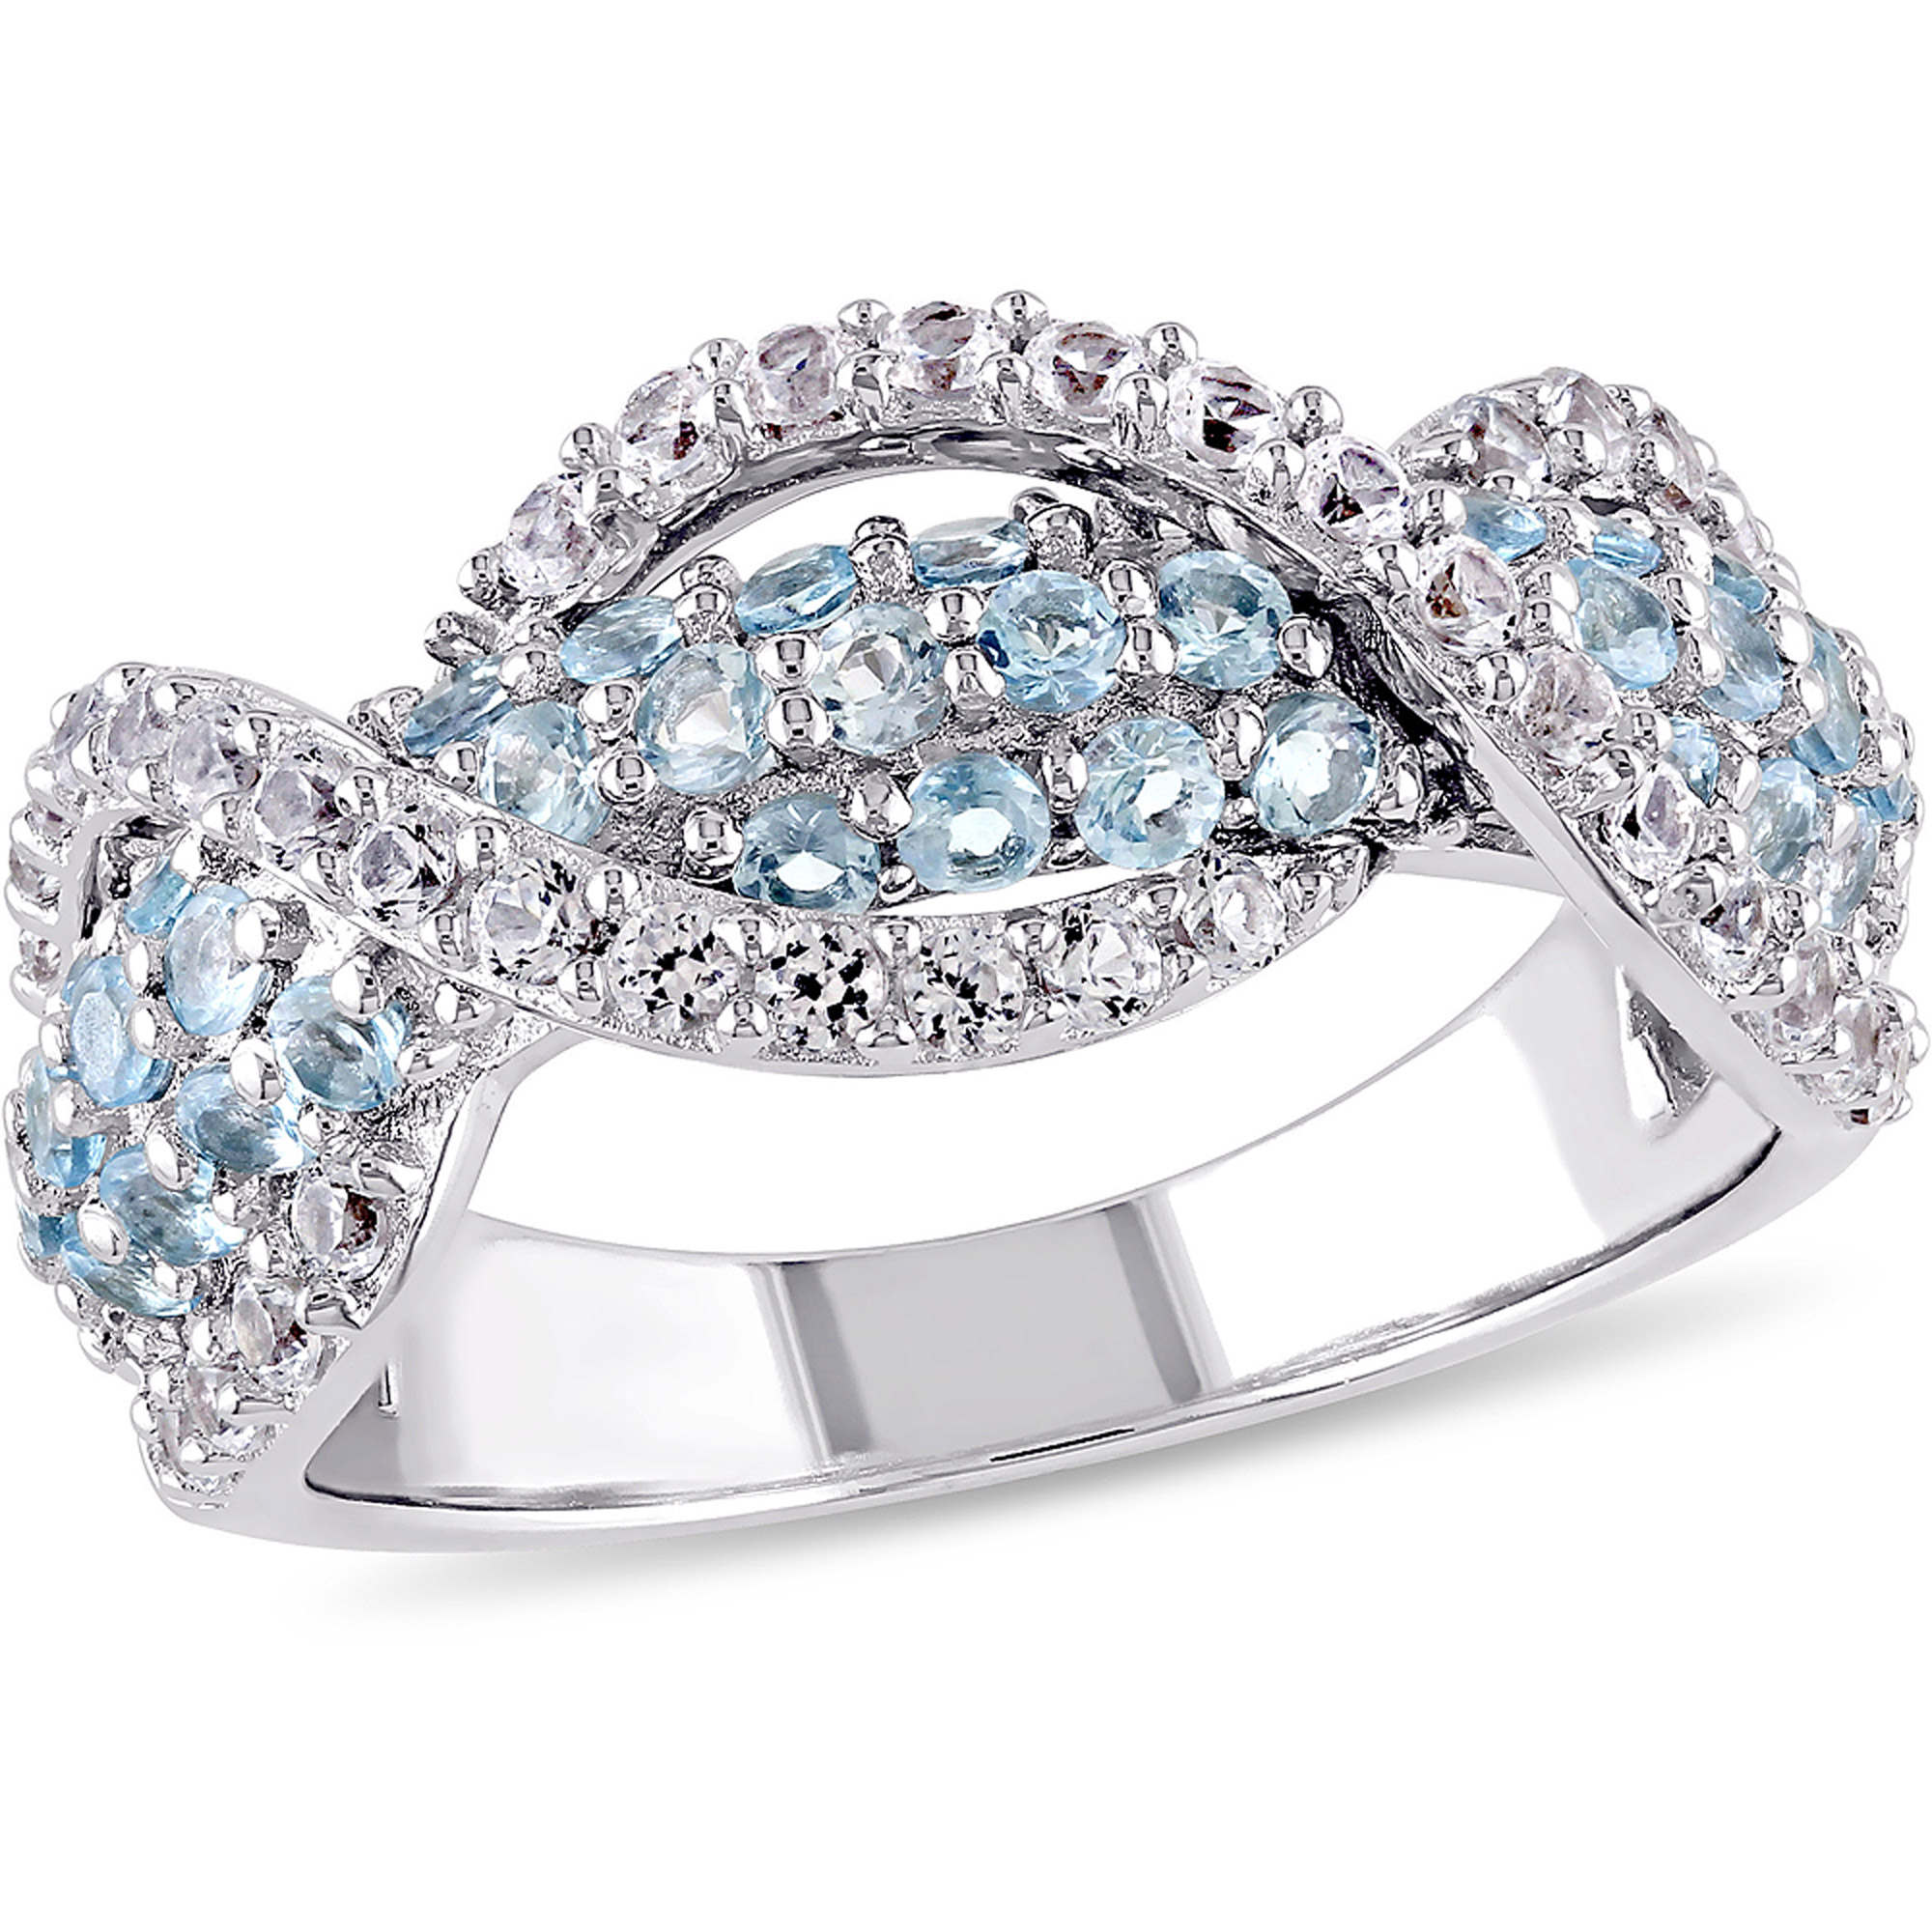 1-3 4 Carat T.G.W. Blue Topaz and Created White Sapphire Sterling Silver Three Row Infinity Ring by Miabella